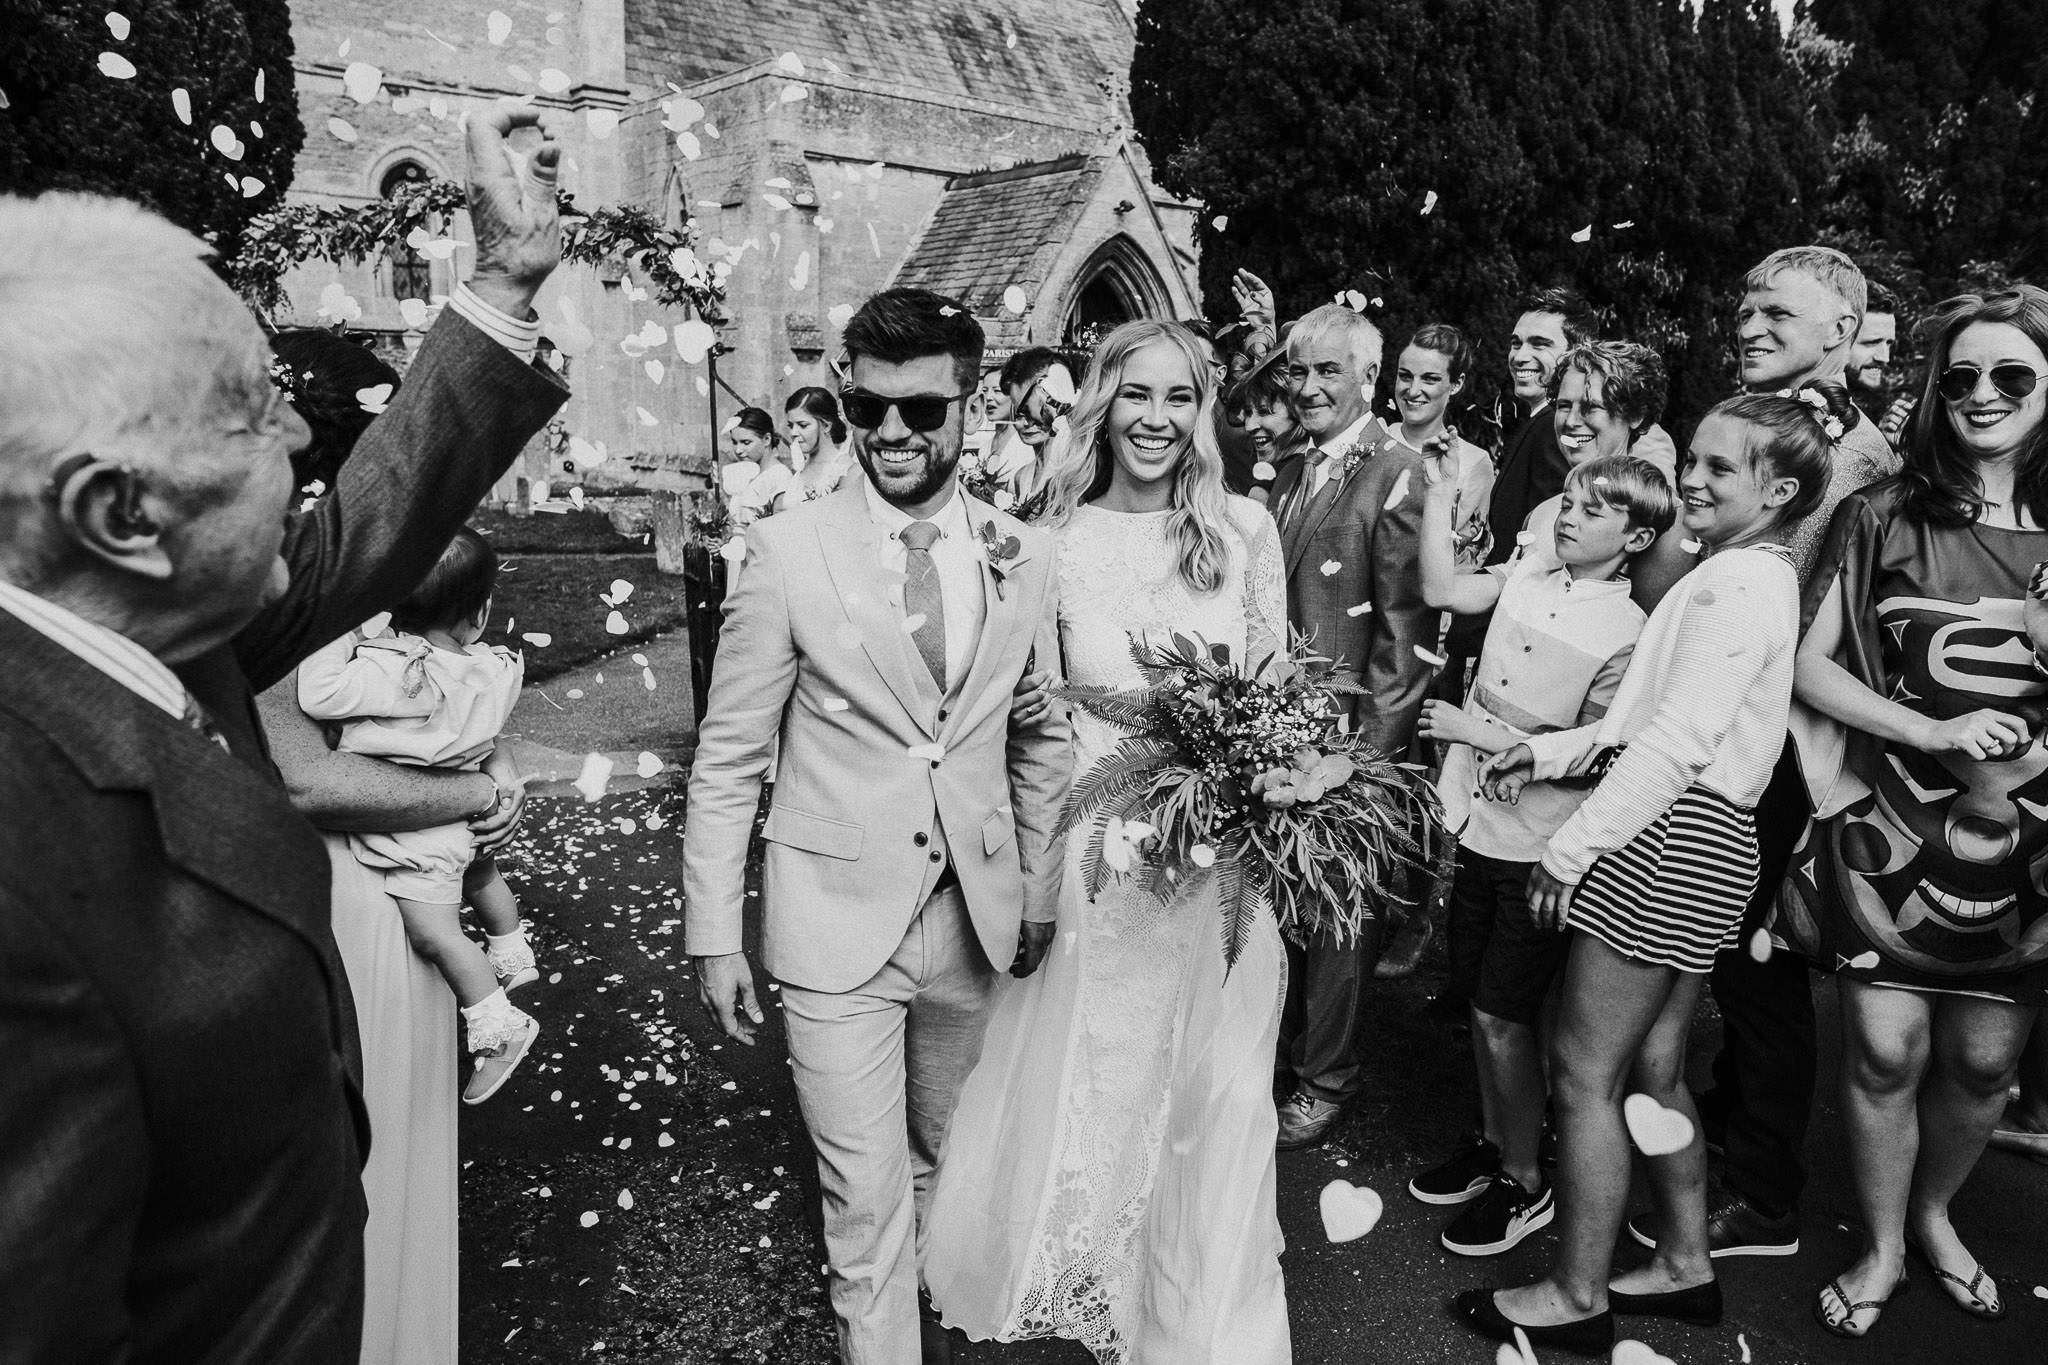 Lincolnshire_Alternative_Wedding_Photographer-47.jpg